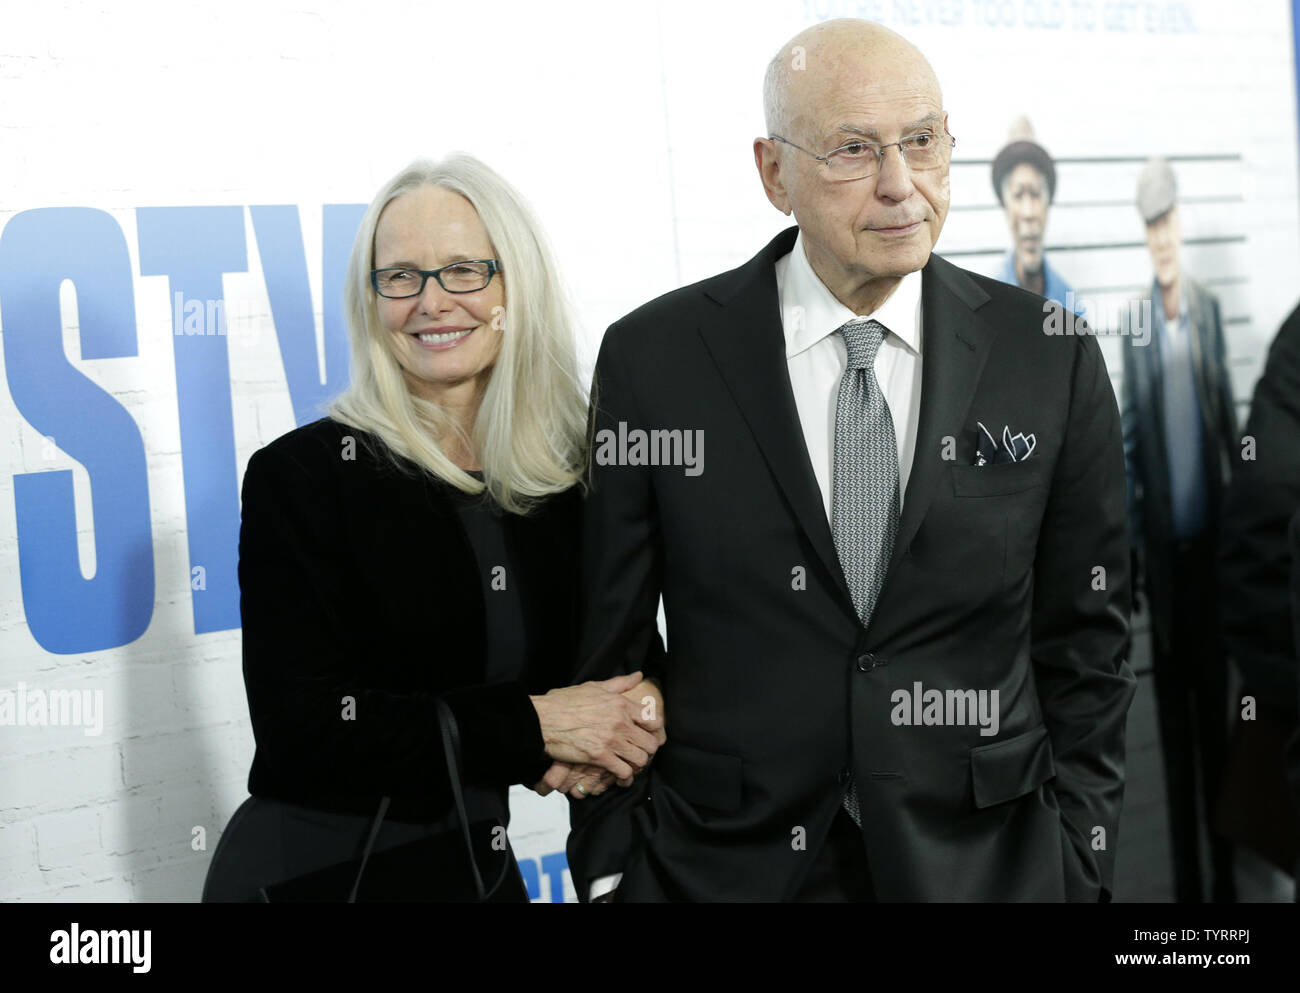 Suzanne Newlander Arkin, and Alan Arkin  arrive on the red carpet at the 'Going in Style' World Premiere at SVA Theatre on March 30, 2017 in New York City.    Photo by John Angelillo/UPI - Stock Image